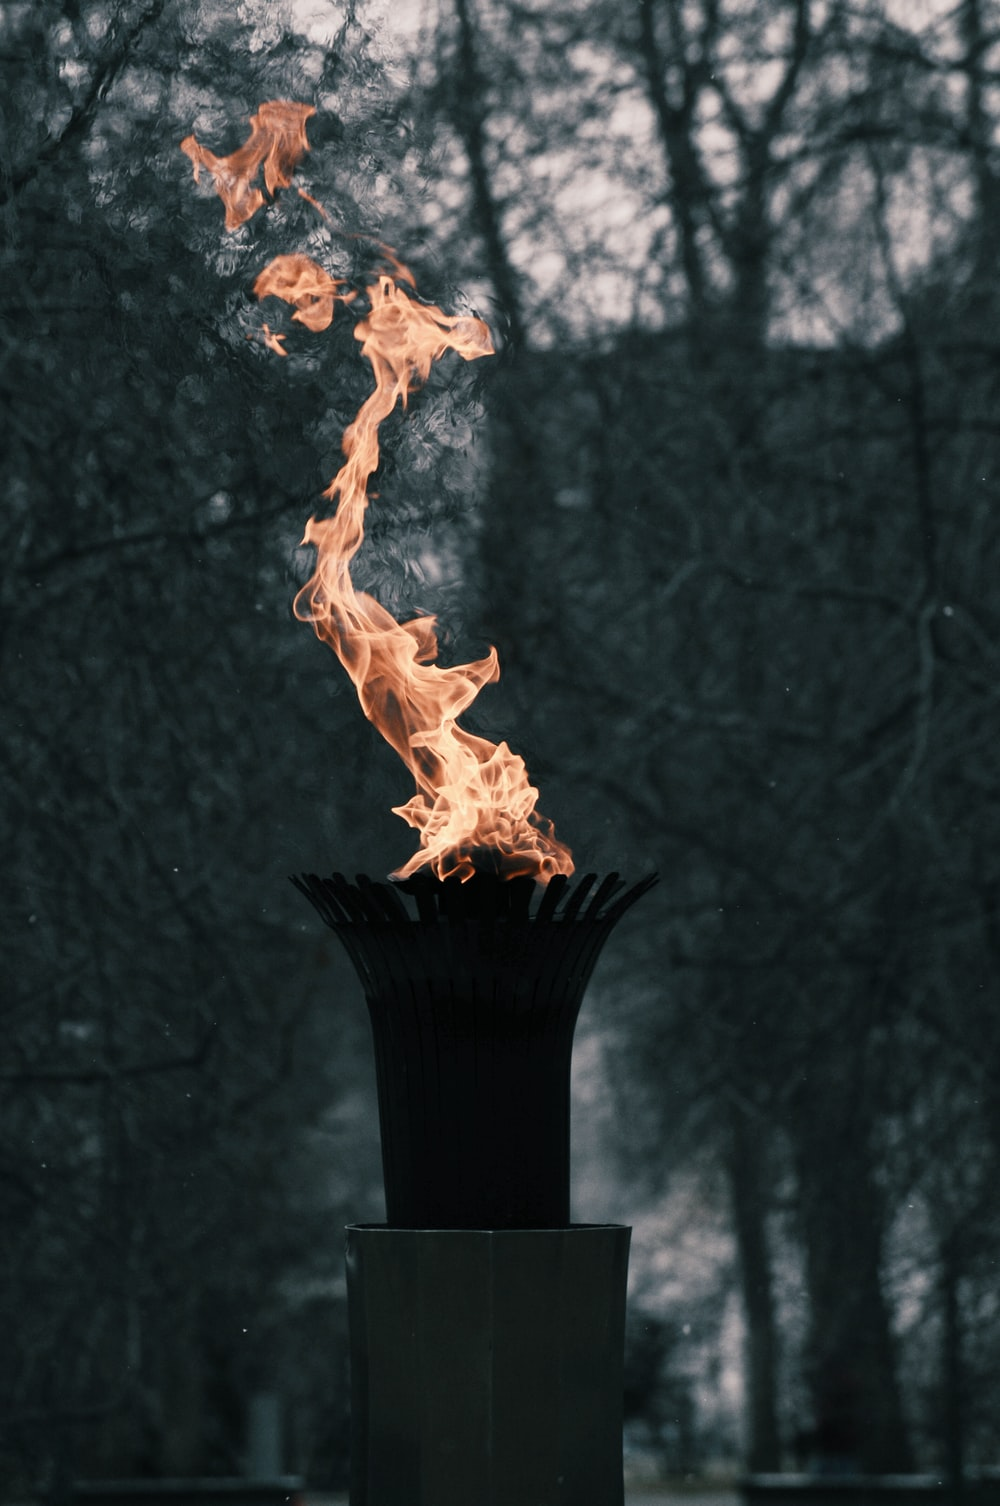 flame near trees